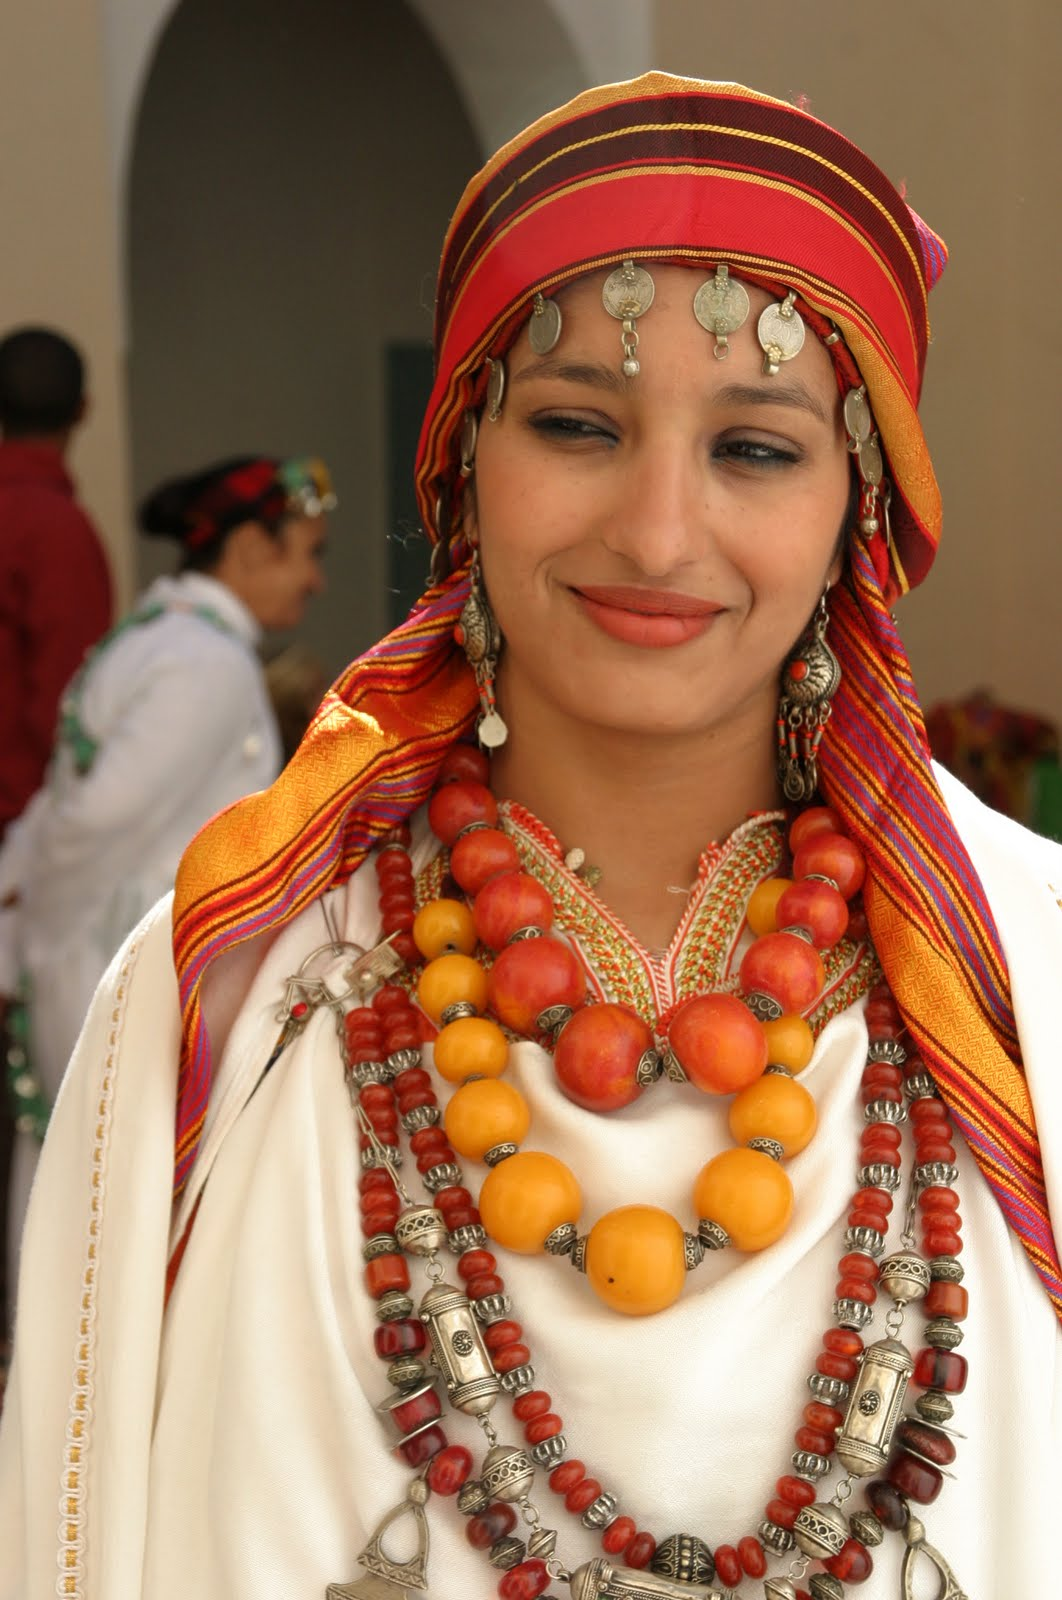 Shasharishi - The Big Cover-up: This Moroccan Bride - Love